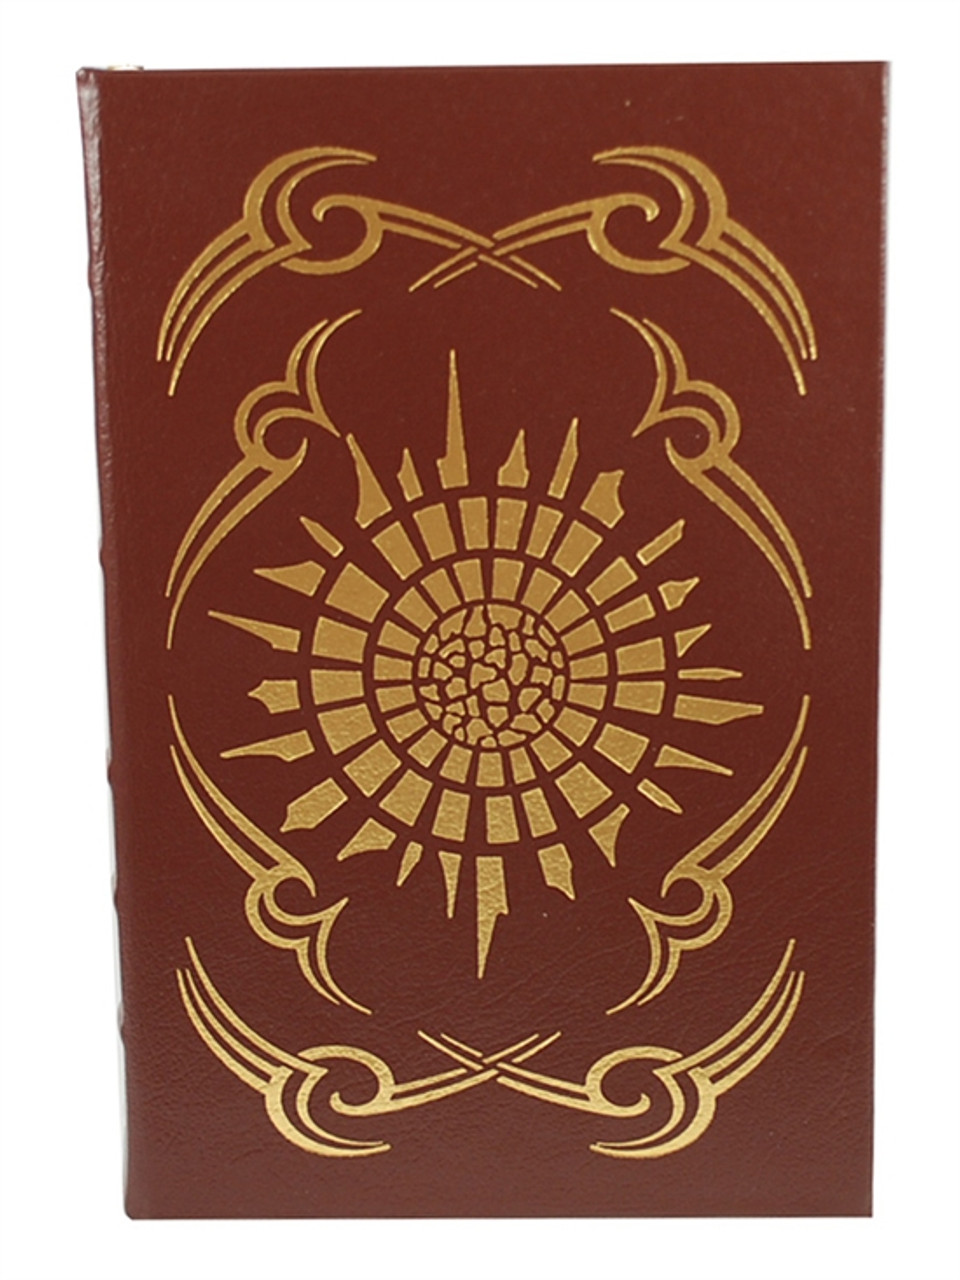 "Easton Press ""The Last Centurion"" John Ringo, Signed First Edition #847 of only 900, Luxurious Leather Bound [Very Fine]"